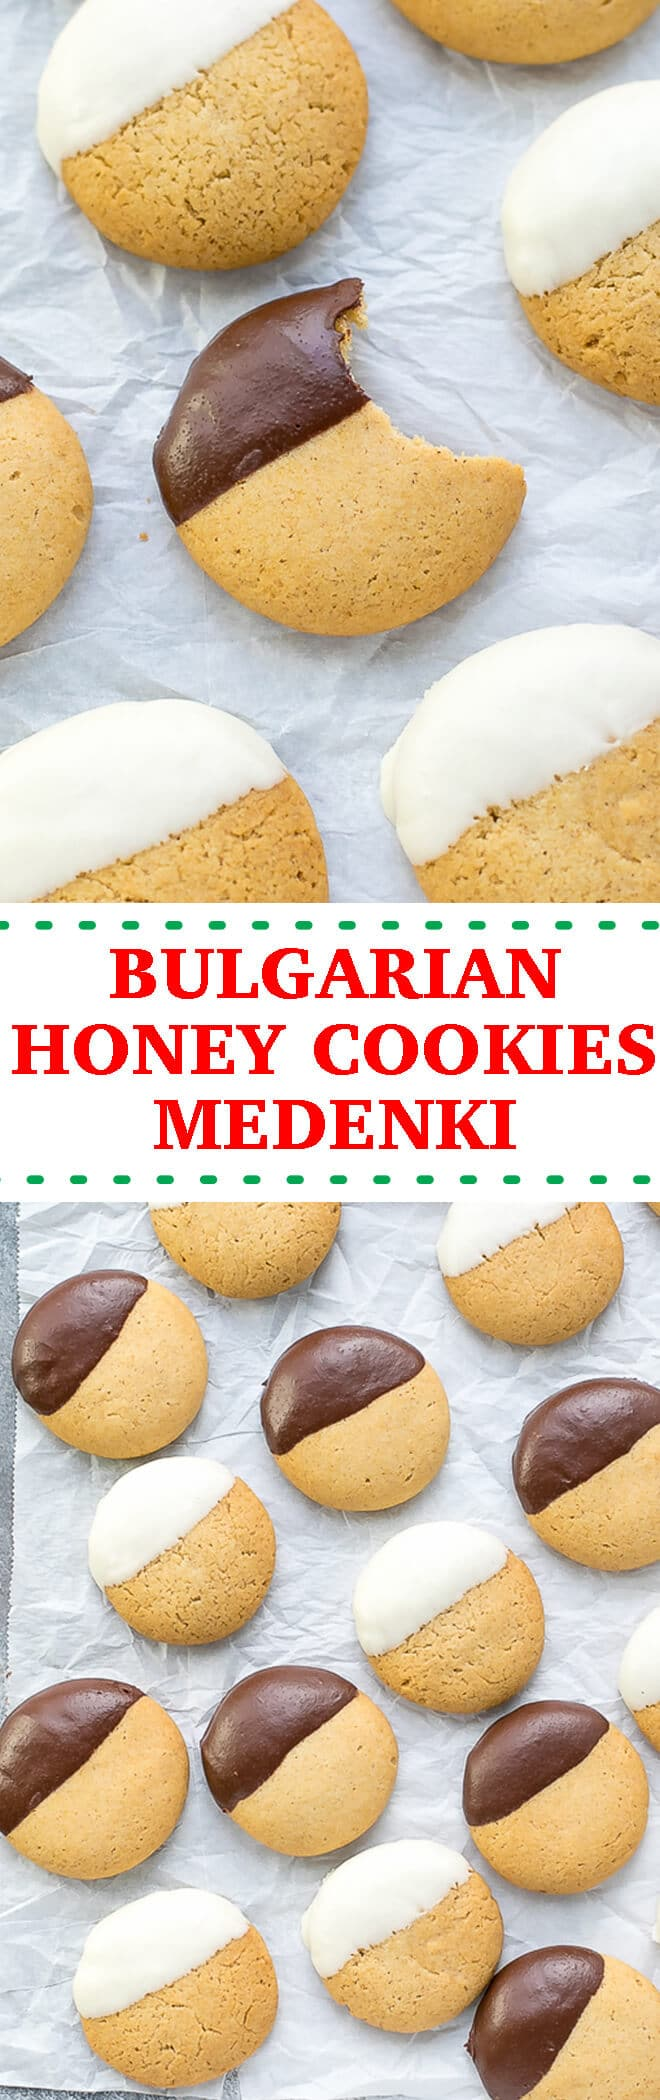 Bulgarian Honey Cookies Medenki Recipe - these soft, spiced cookies, dipped in chocolate make the perfect sweet treat this holiday season.